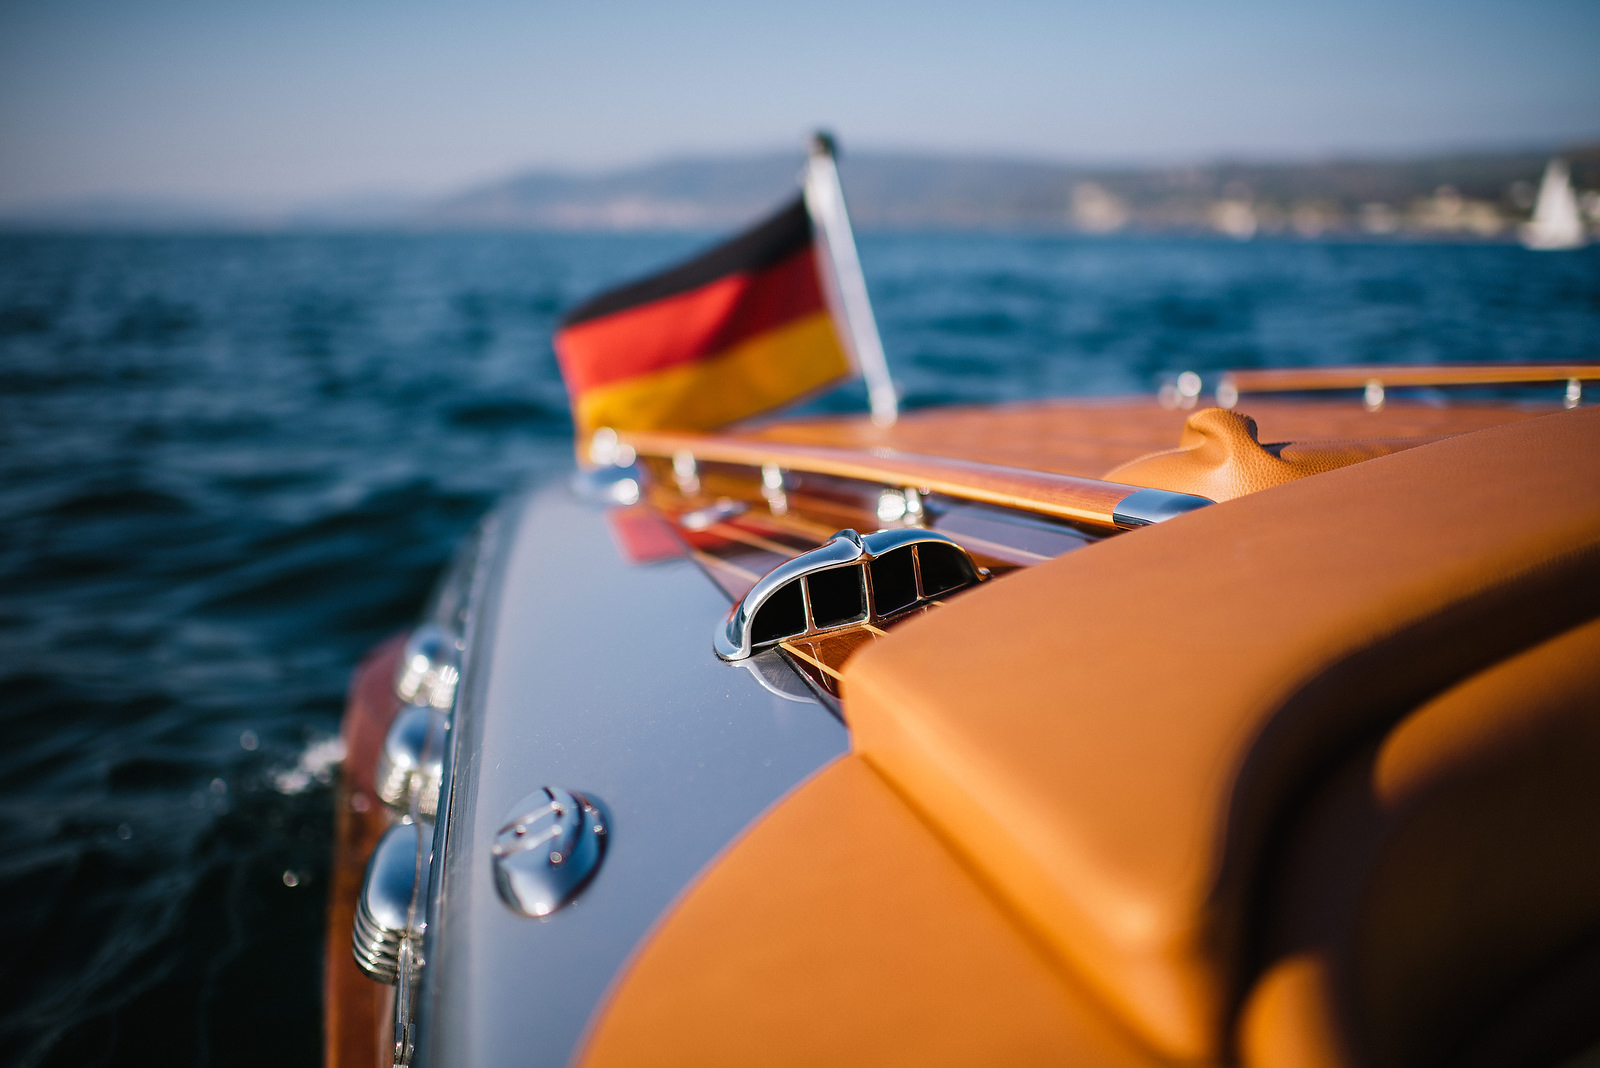 Fotograf Konstanz - Classic Boat Pegiva Shooting Bodensee Hochzeit Erlebnis EFP 35 - Experience a Pegiva boat shooting on Lake Constance  - 10 -